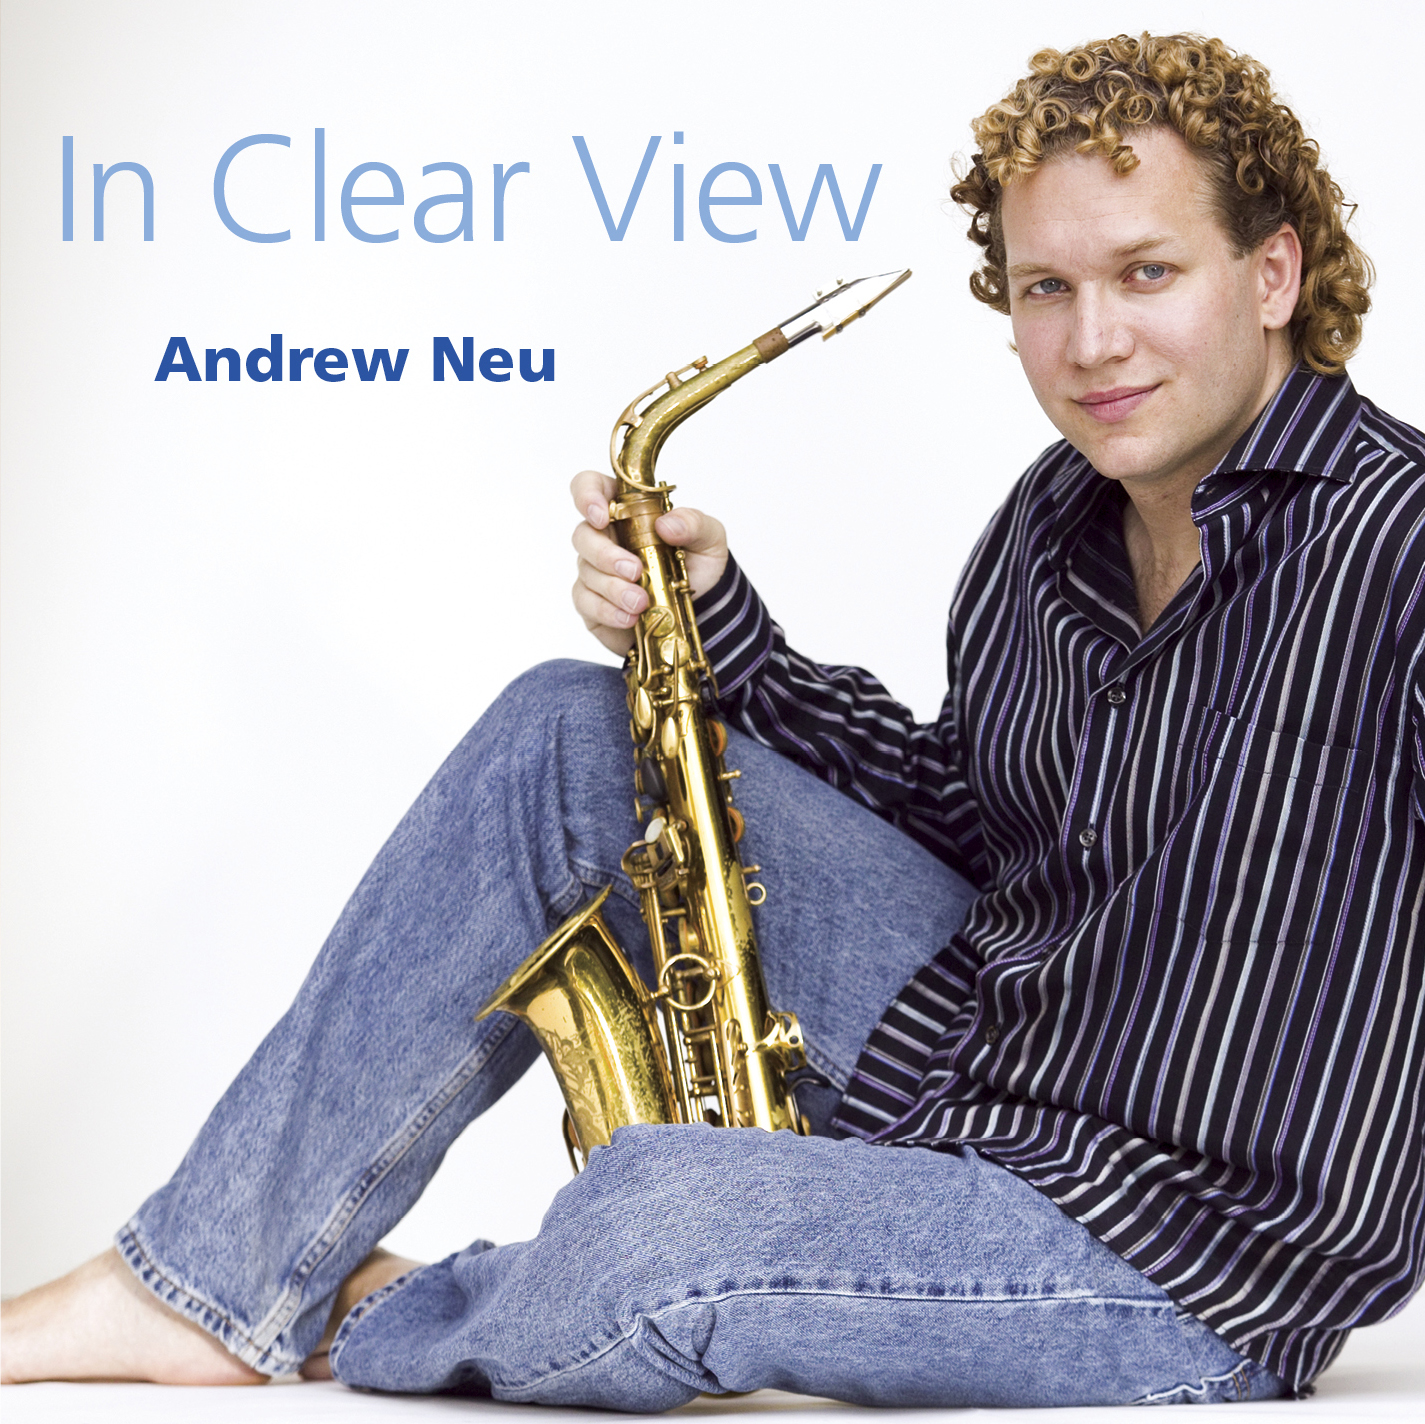 Andrew's second CD,  IN CLEAR VIEW , began production in Philadelphia in 2004 with producer, Tom Petroski. A fortunate introduction to bassist/producer, Brian Bromberg, resulted in his contribution of 4 tunes with LA musicians. Fusion masters, Jeff Lorber, Dave Weckl and Vinnie Coliauta along with the Bright and Tight Horns bring tremendous energy as well. The first single; Wine, became Andrew's first radio hit and helped to propel him towards an alliance with Bobby Caldwell. A true smooth jazz project, this album continues the use of live musicians in making this a classic record with a lot of deep tracks.